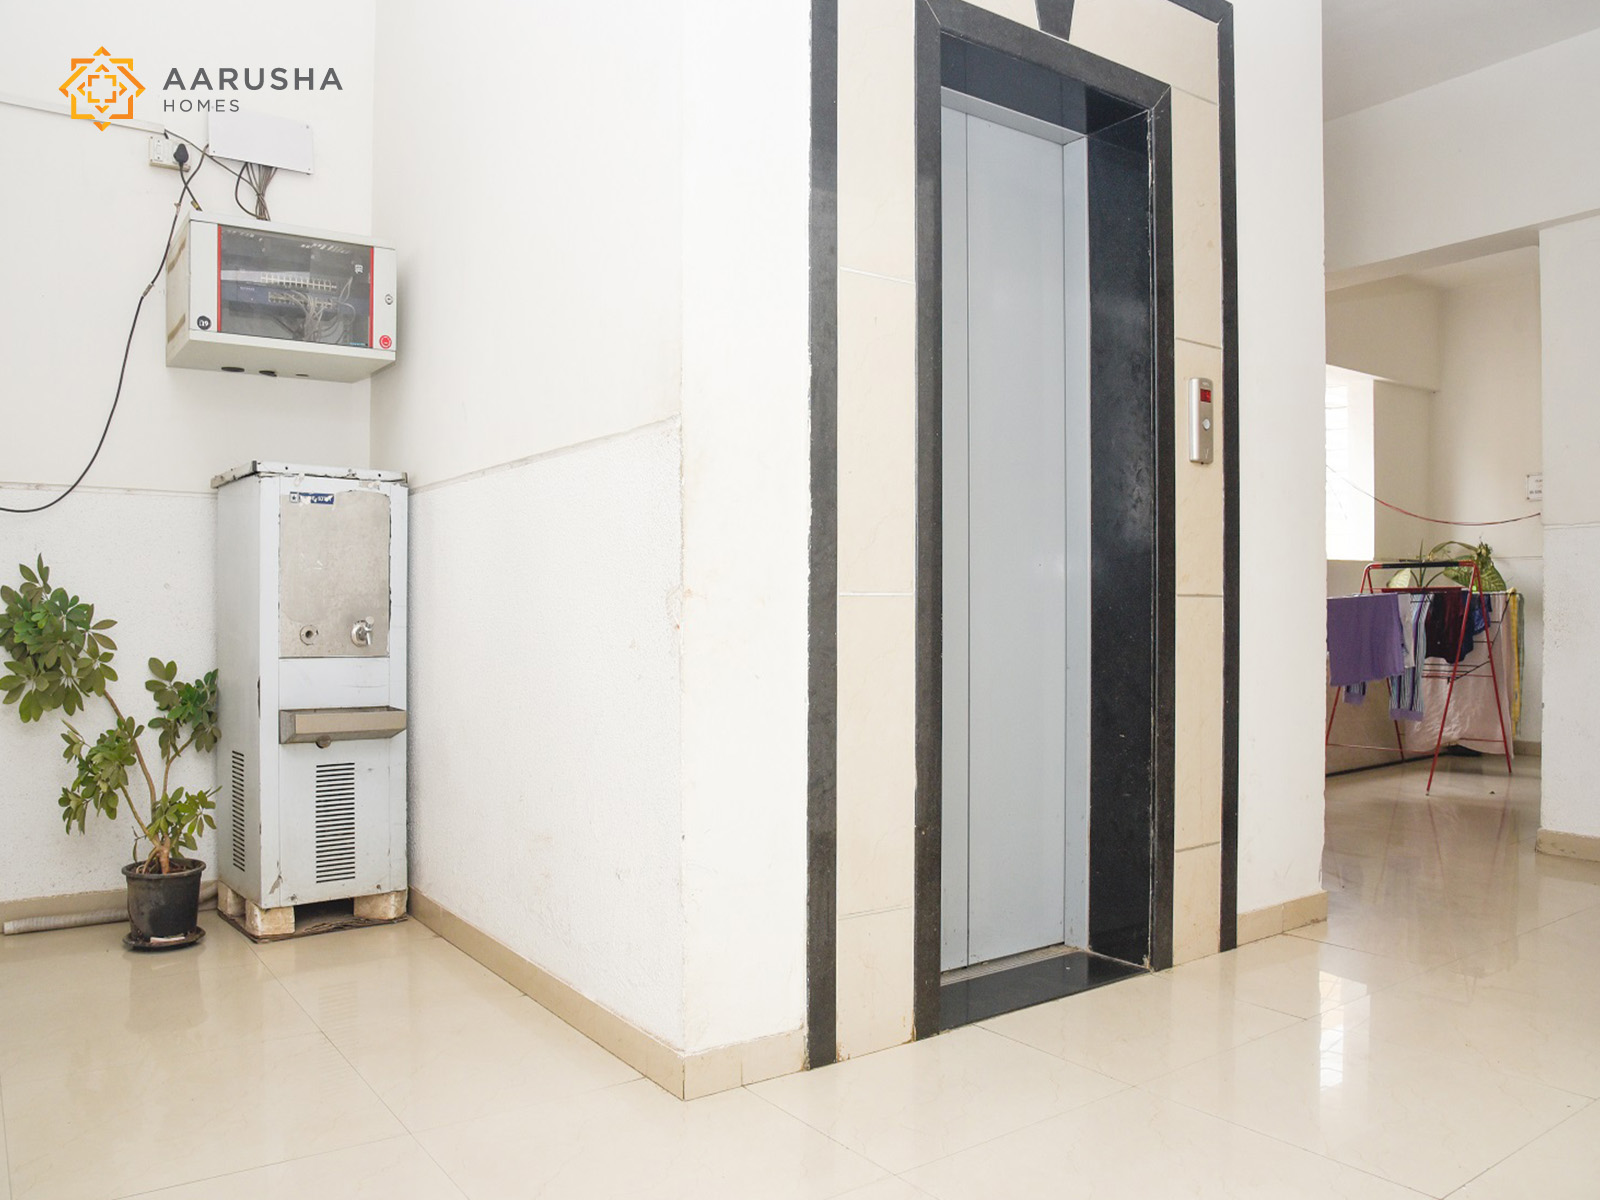 PG & Hostel For Women In Wakad, Pune